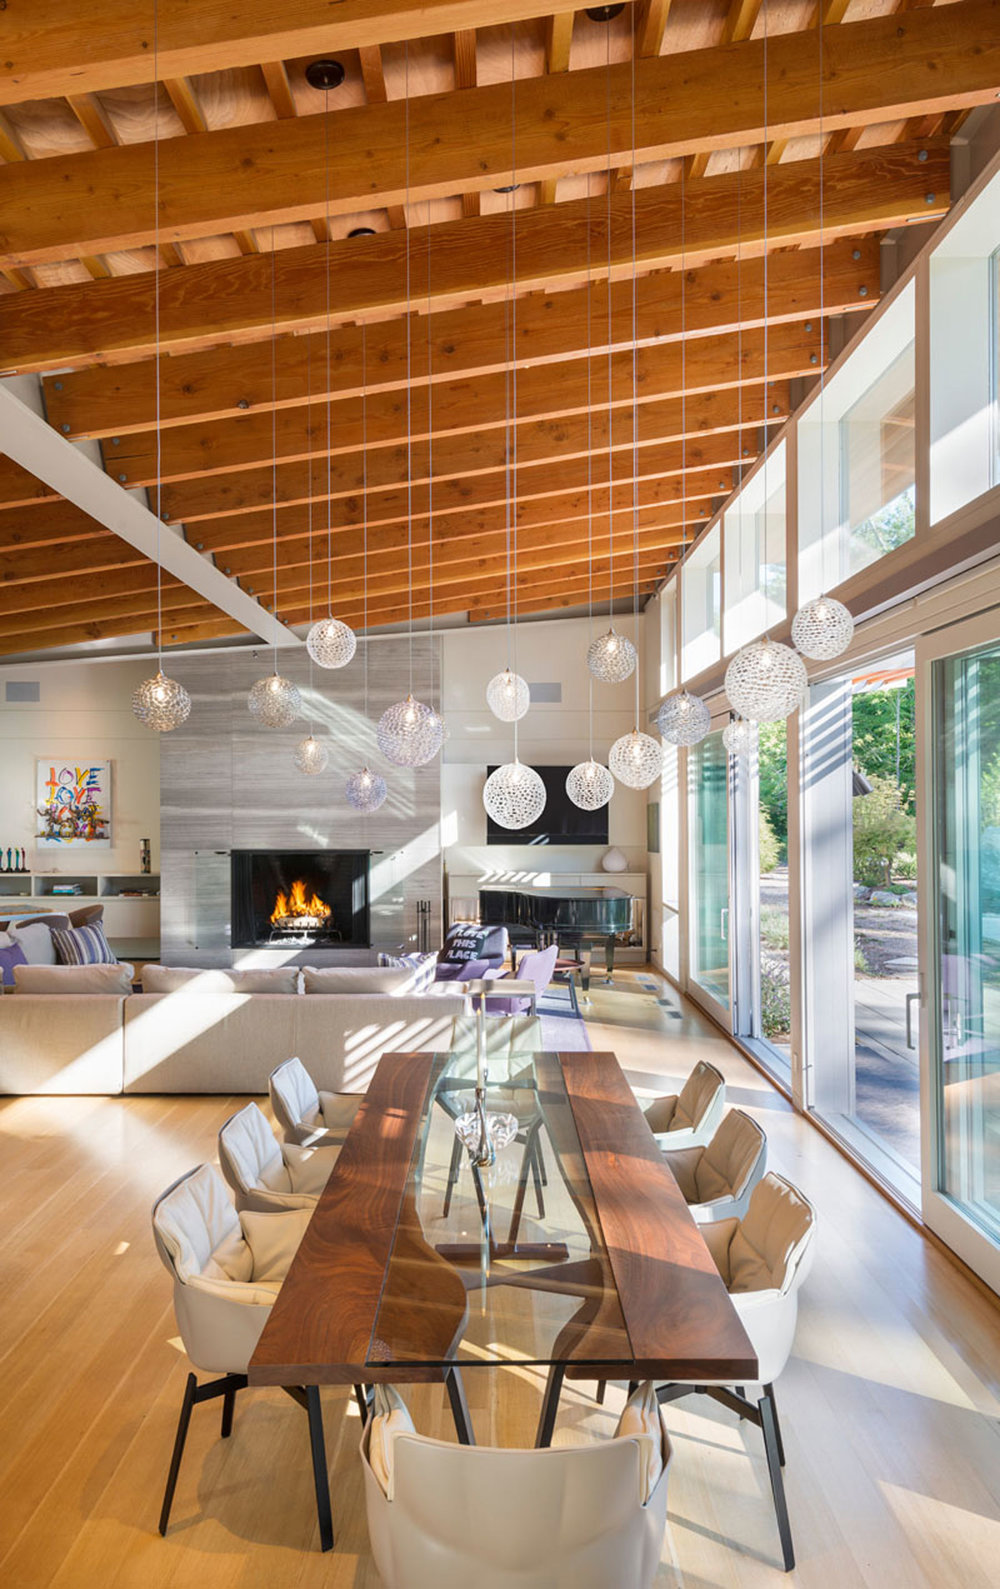 modern-dining-area-douglas-fir-beams-ceiling-05.jpg